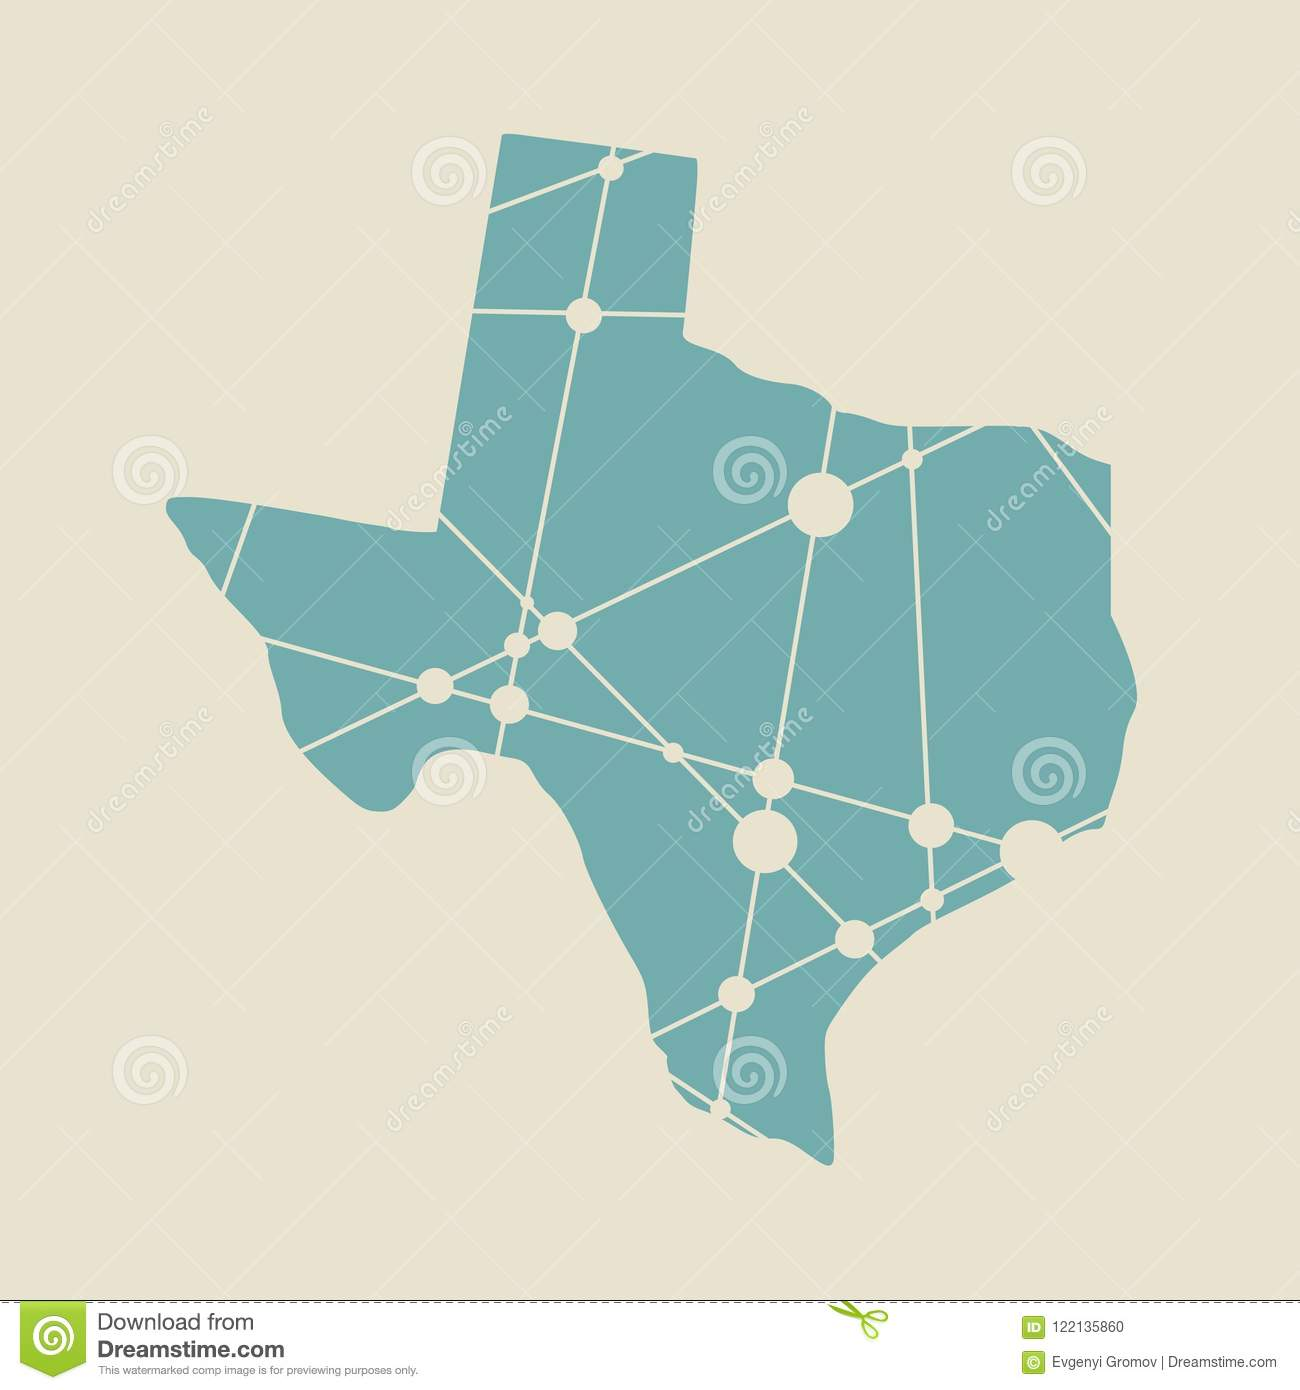 In The Texas State Map Of Usa on texas lone star state map, texas united states, texas vs. california size, texas state large map, texas map north america, 2nd biggest state in usa, google maps texas usa, united states political map usa, texas superfund sites map, texas state map by county, texas on usa map, texas golf map, texas map to print, texas maps online, texas state geography map, texas with capital, texas u.s.a, texas road map of usa, texas zip codes by state, texas state project,